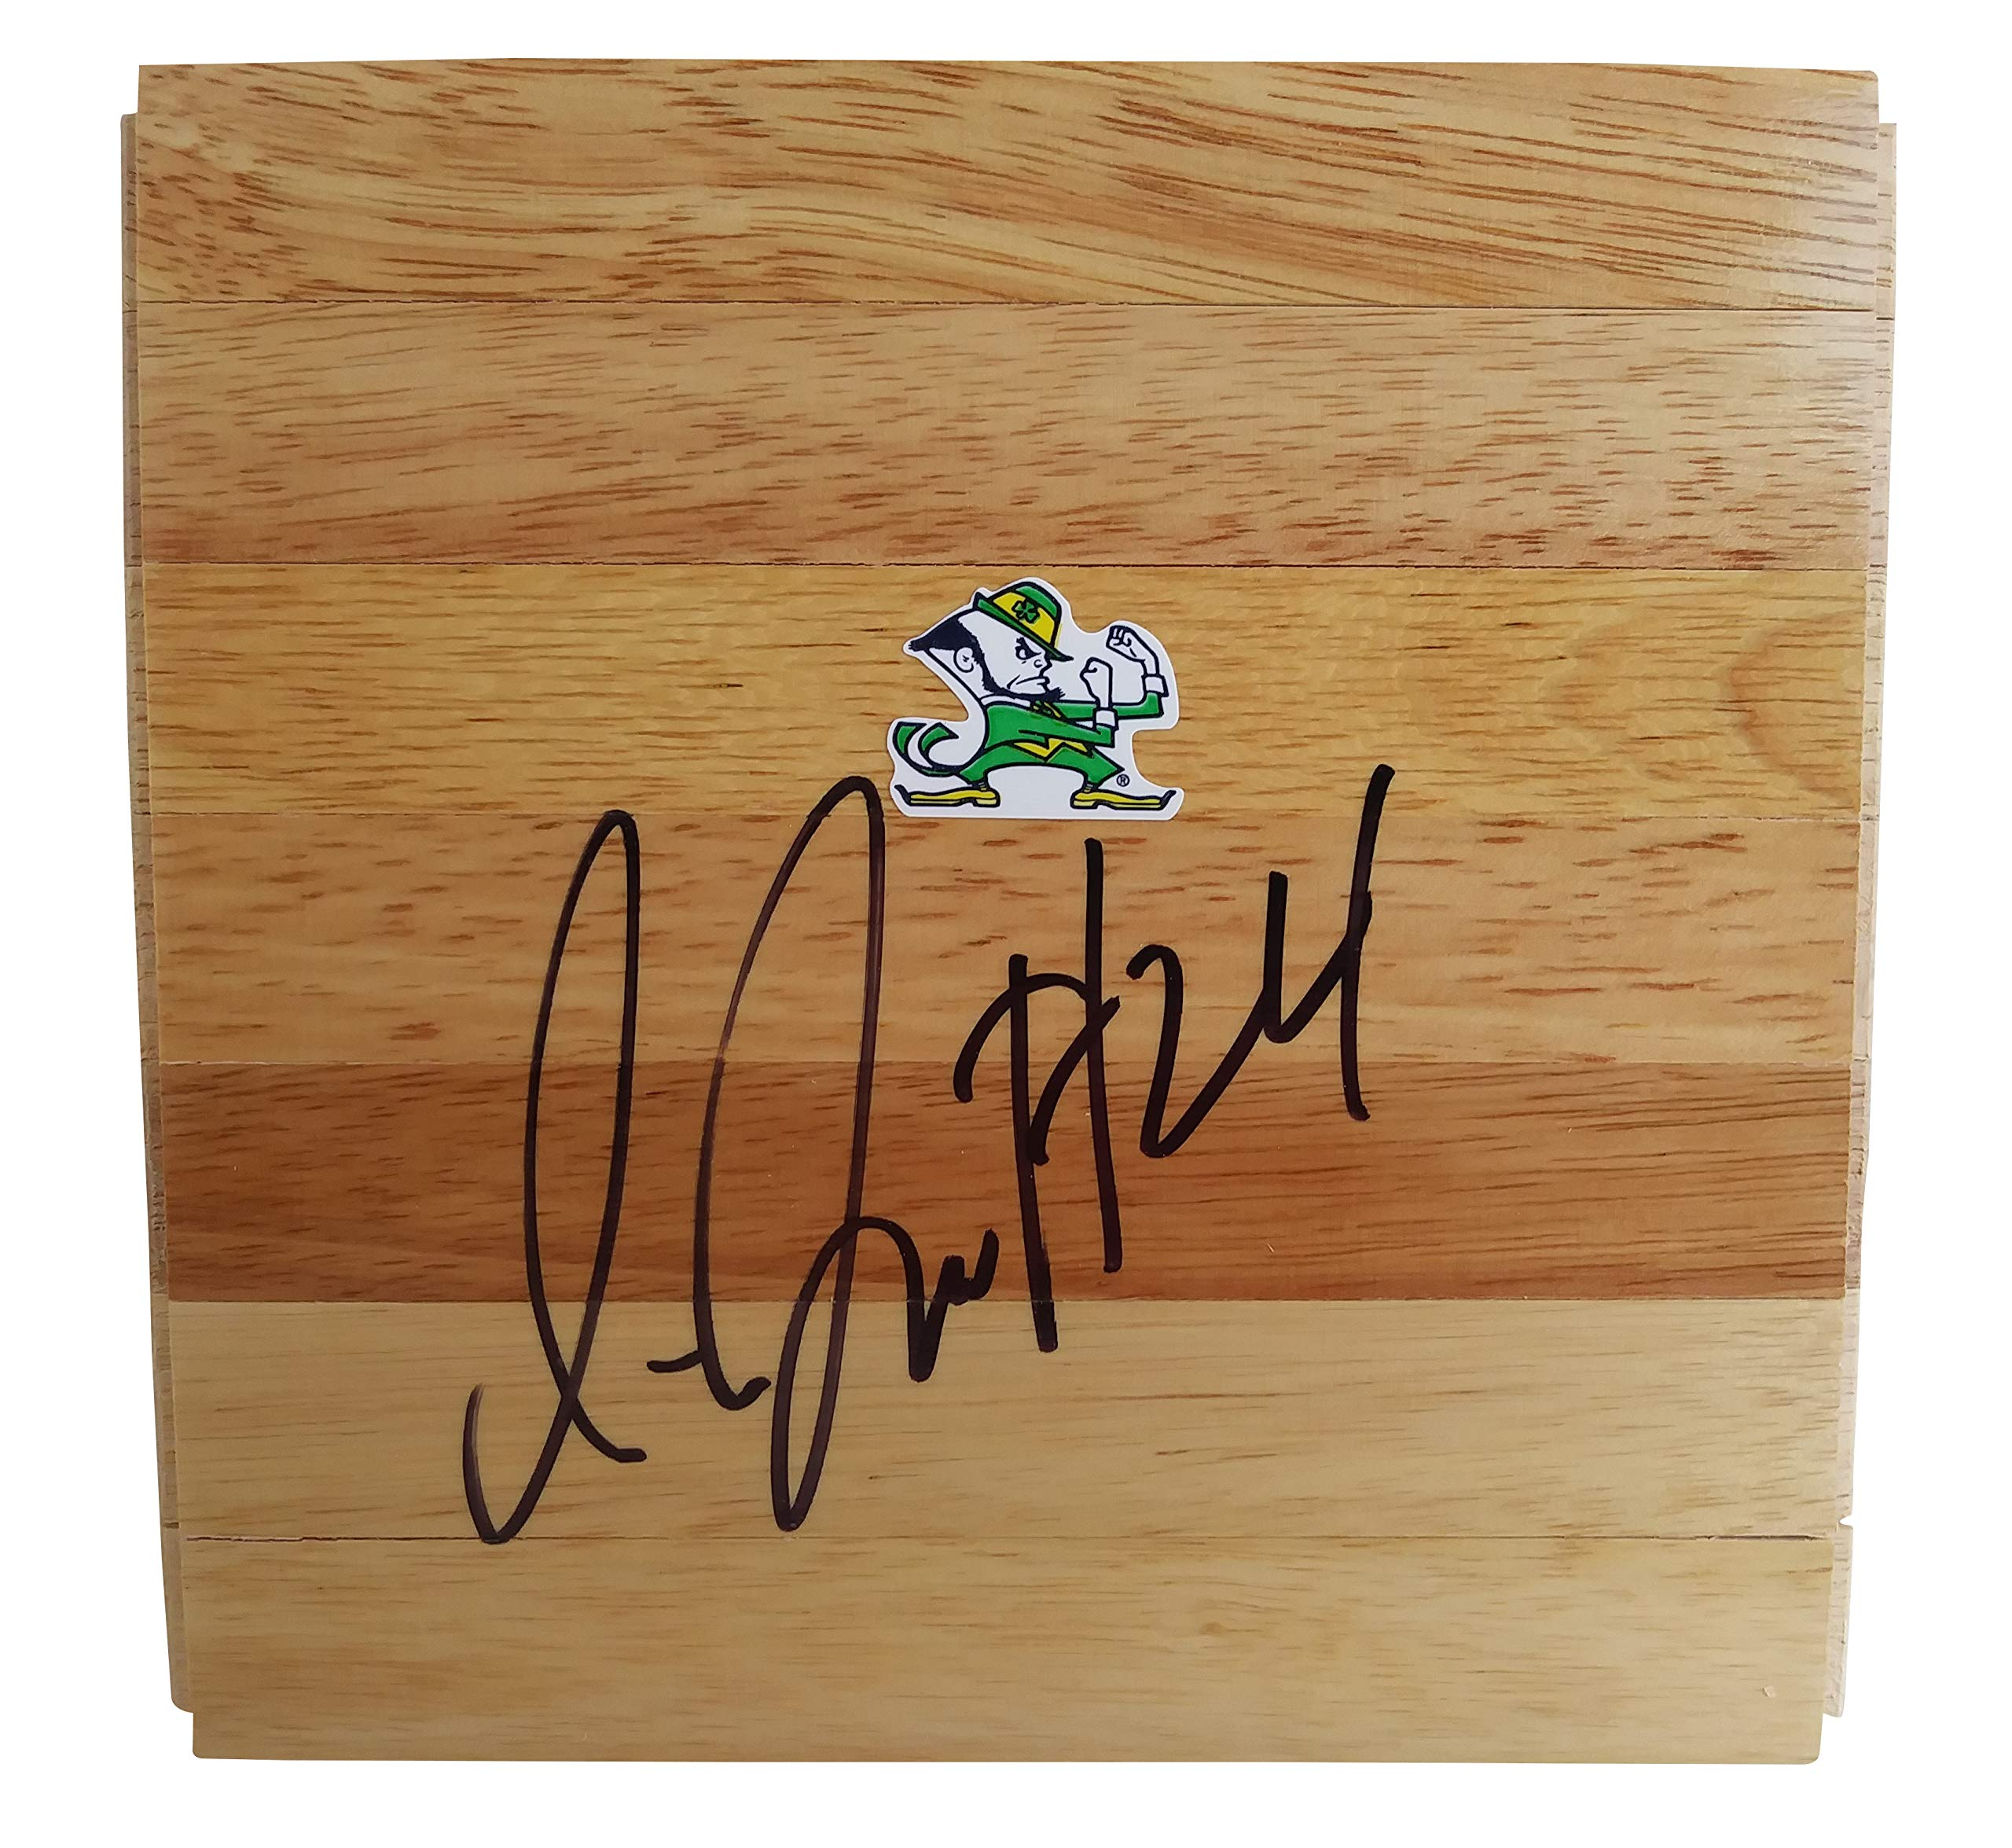 Notre Dame Fighting Irish Jewell Loyd Autographed Hand Signed 6x6 Parquet Floorboard with Proof Photo, Team USA, Seattle Storm, COA Basketball Floor